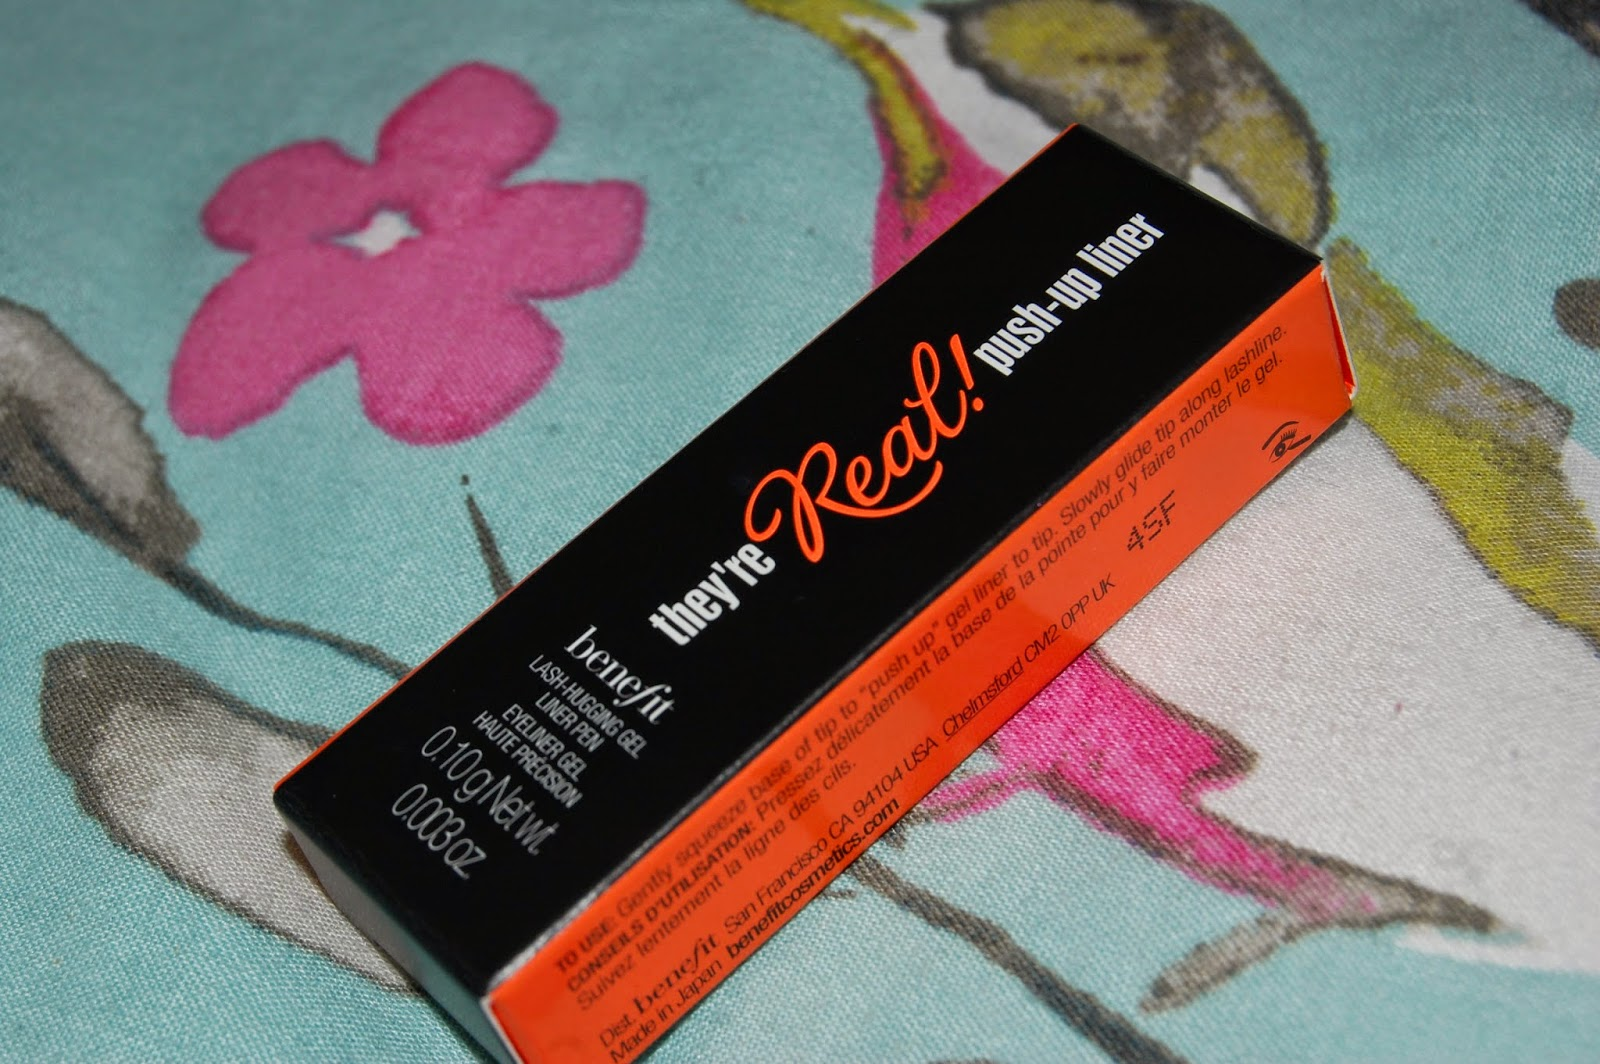 benefit, push up liner, theyre real, eyeliner, mascara, debenhams, make up, haul, tester, beauty, bblogger, bbloggers, maybelline, mac